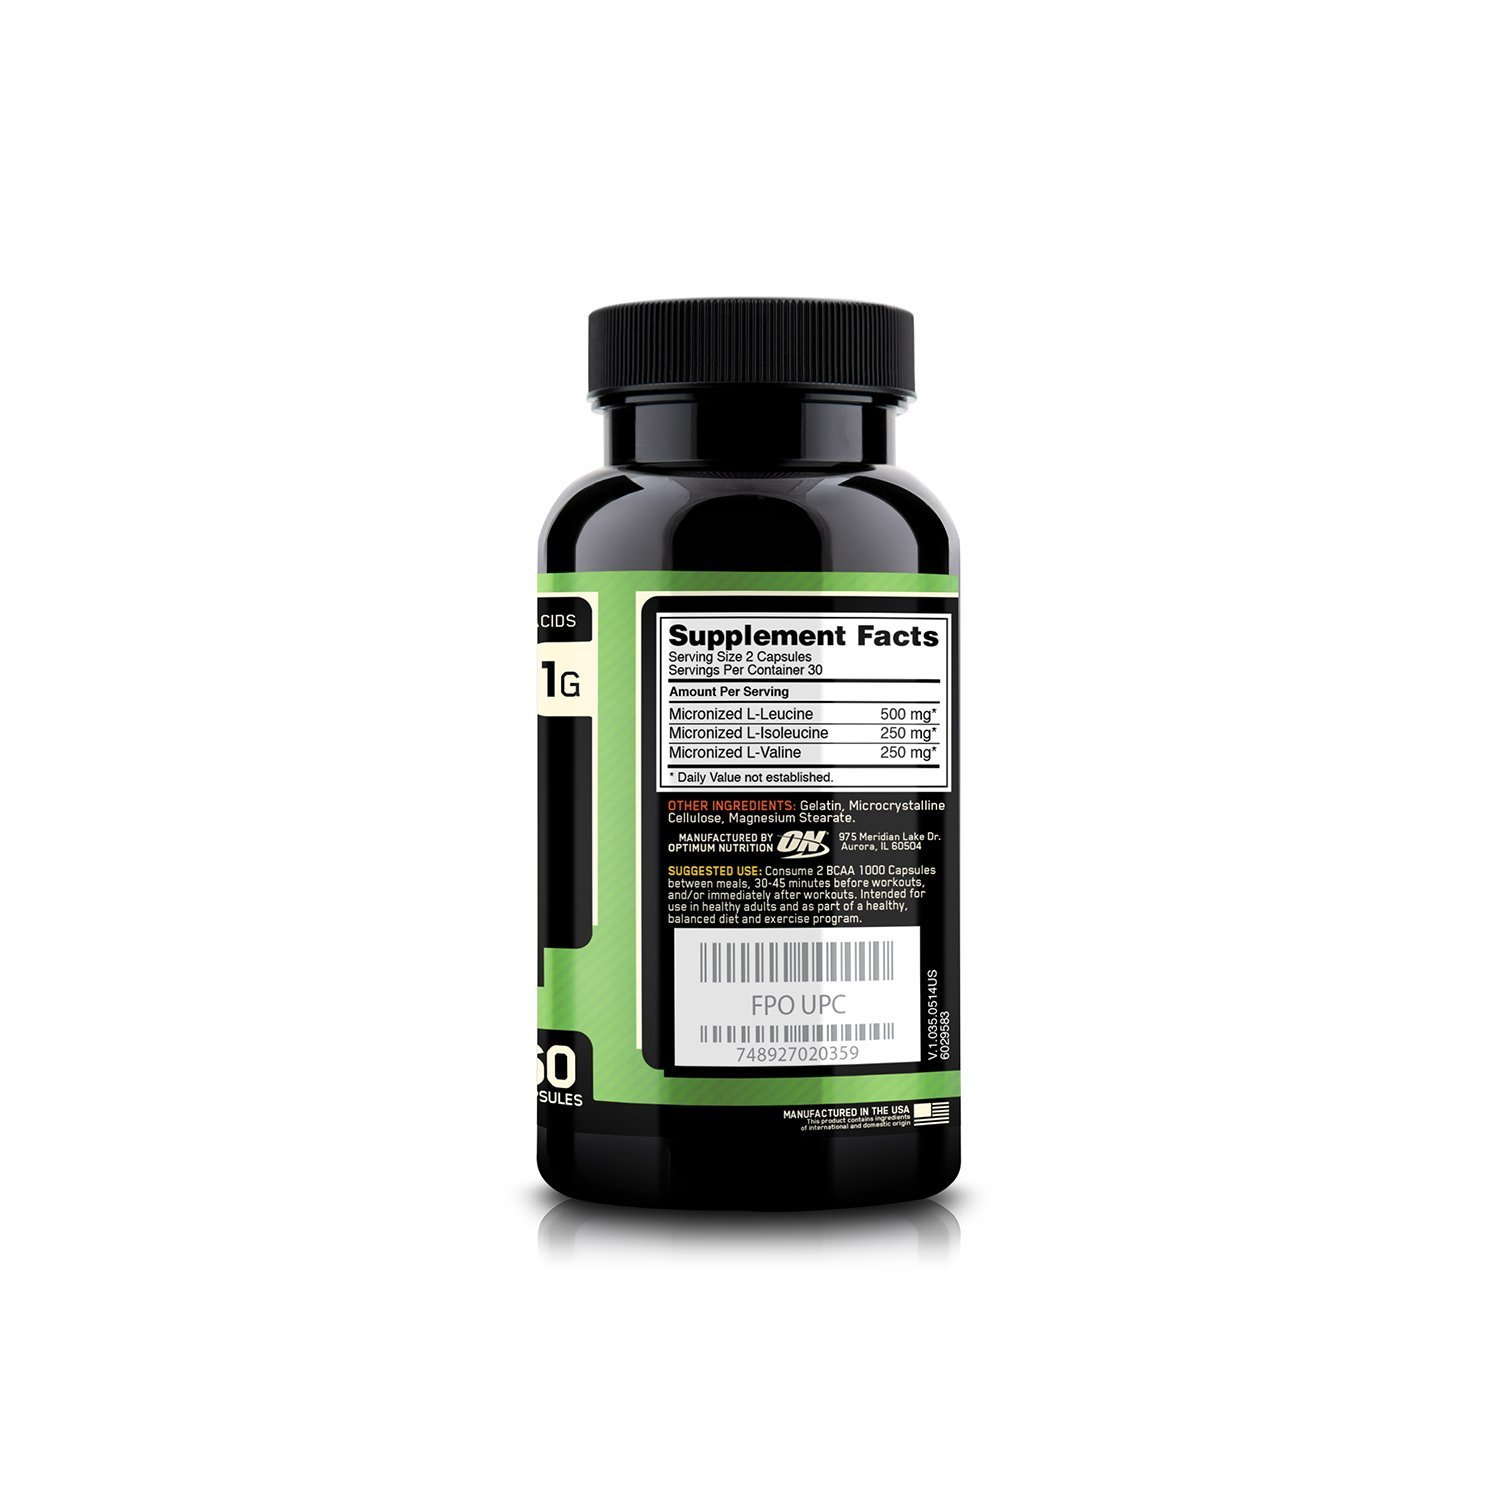 ON-Optimum-Nutrition-BCAA-60-capsules-By-Bright-Commodities suppliments facts